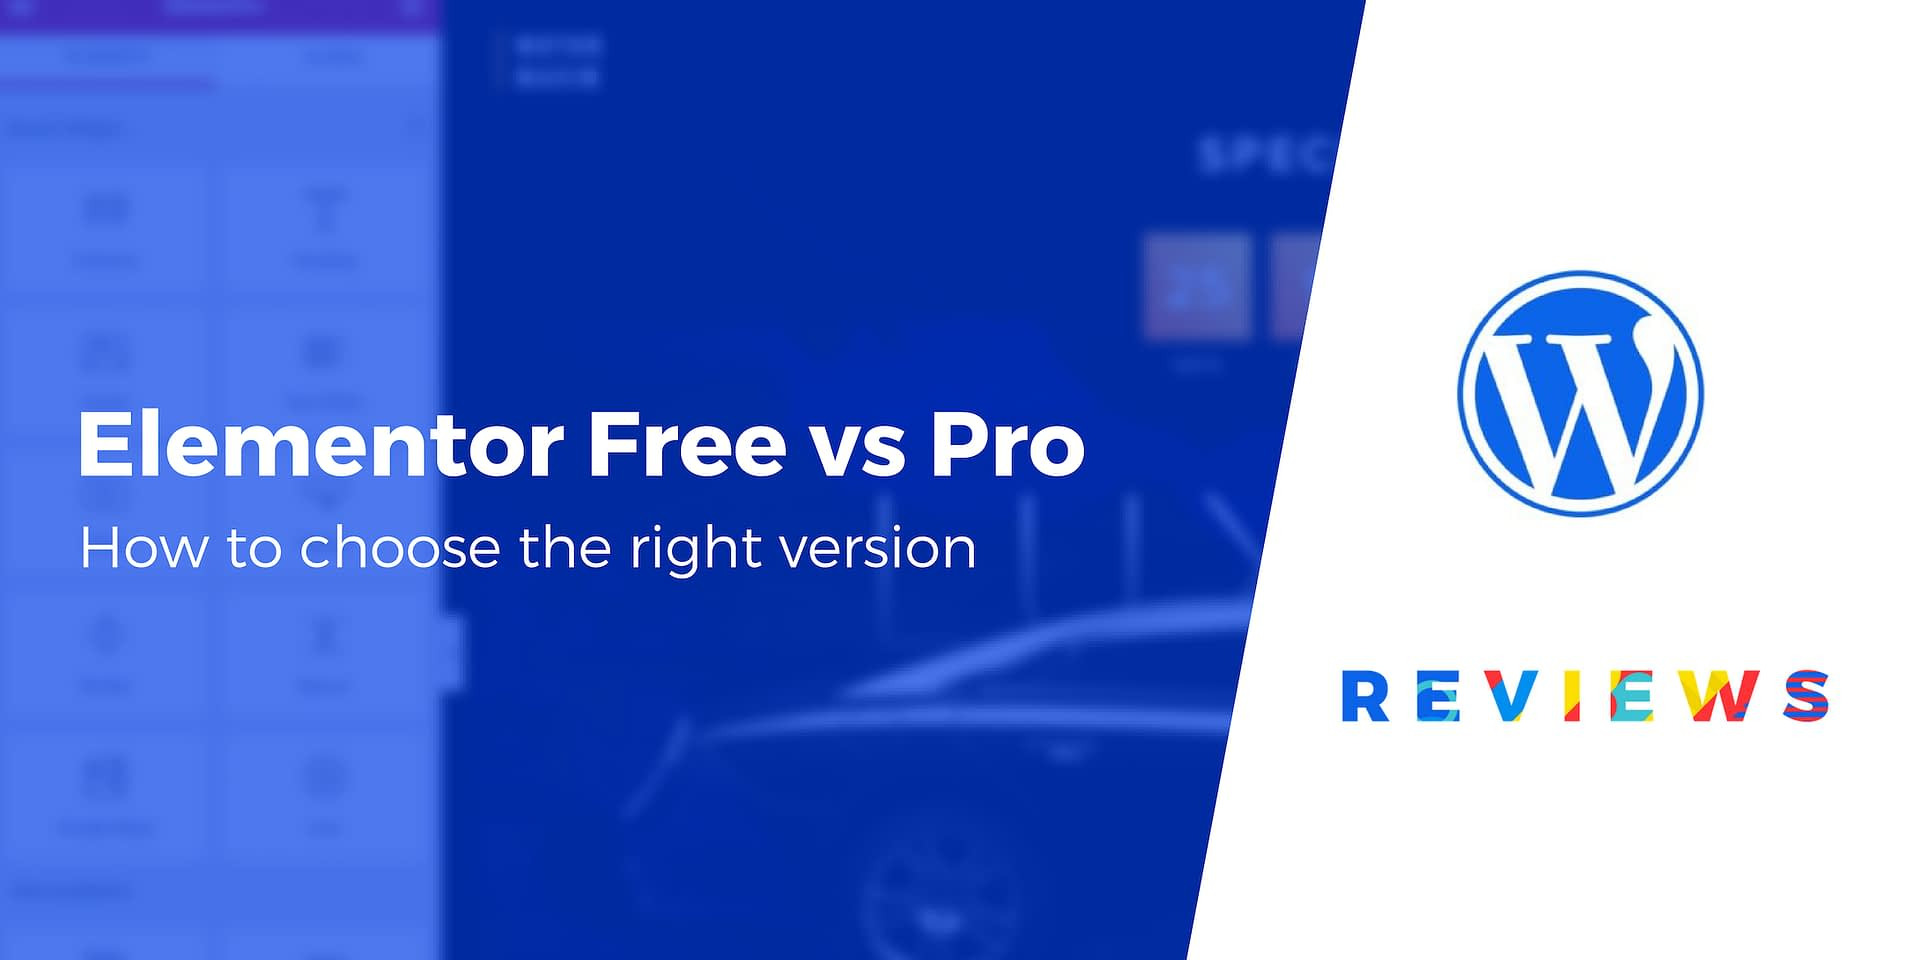 Elementor Free vs Pro Differences: Here's How to Choose the